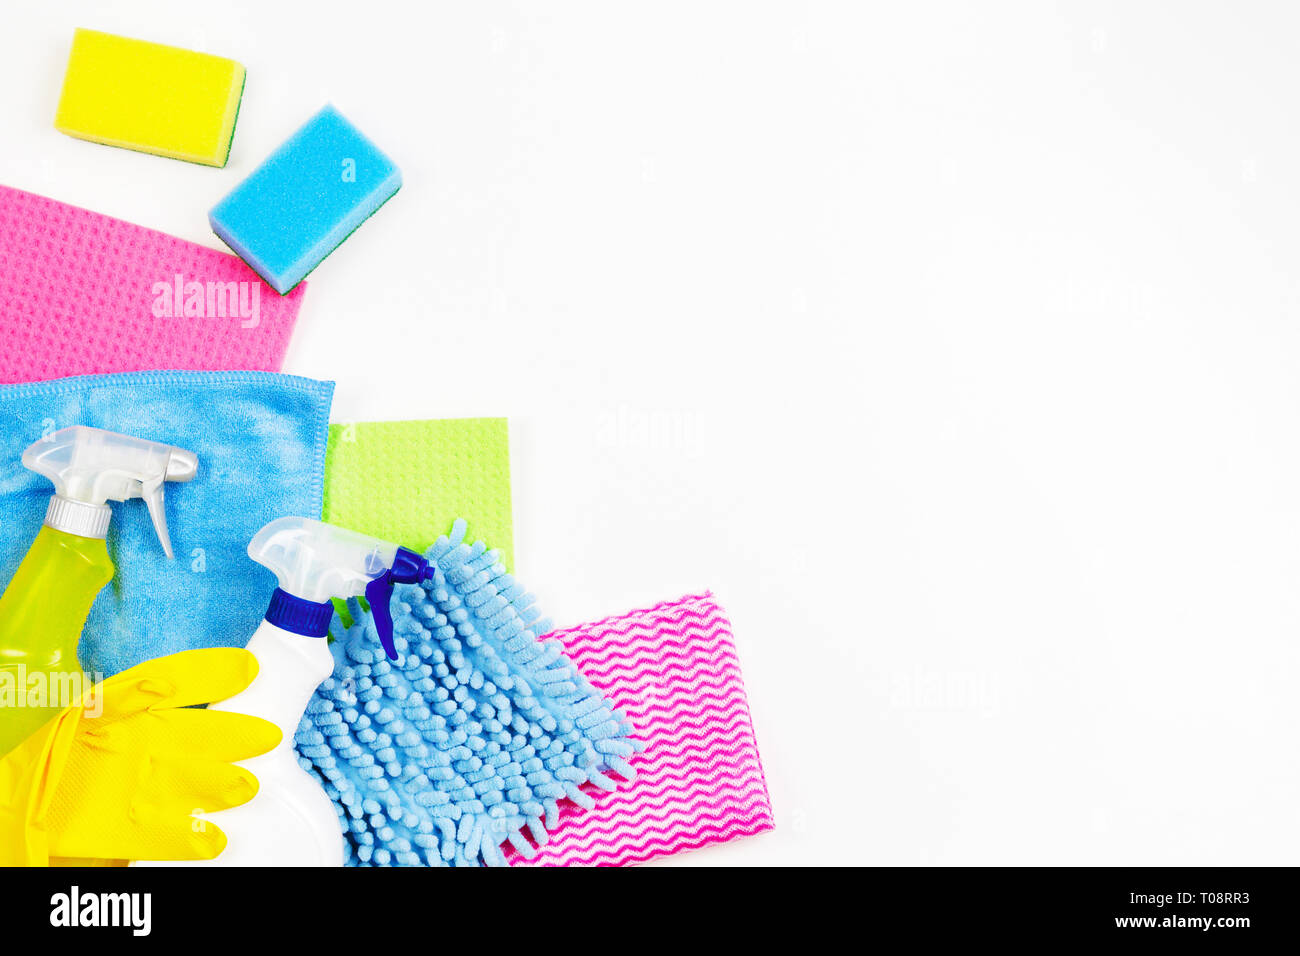 Housework, housekeeping, household, cleaning service concept. Bottles of detergent, rubber gloves, rags and sponges on white background - Stock Image